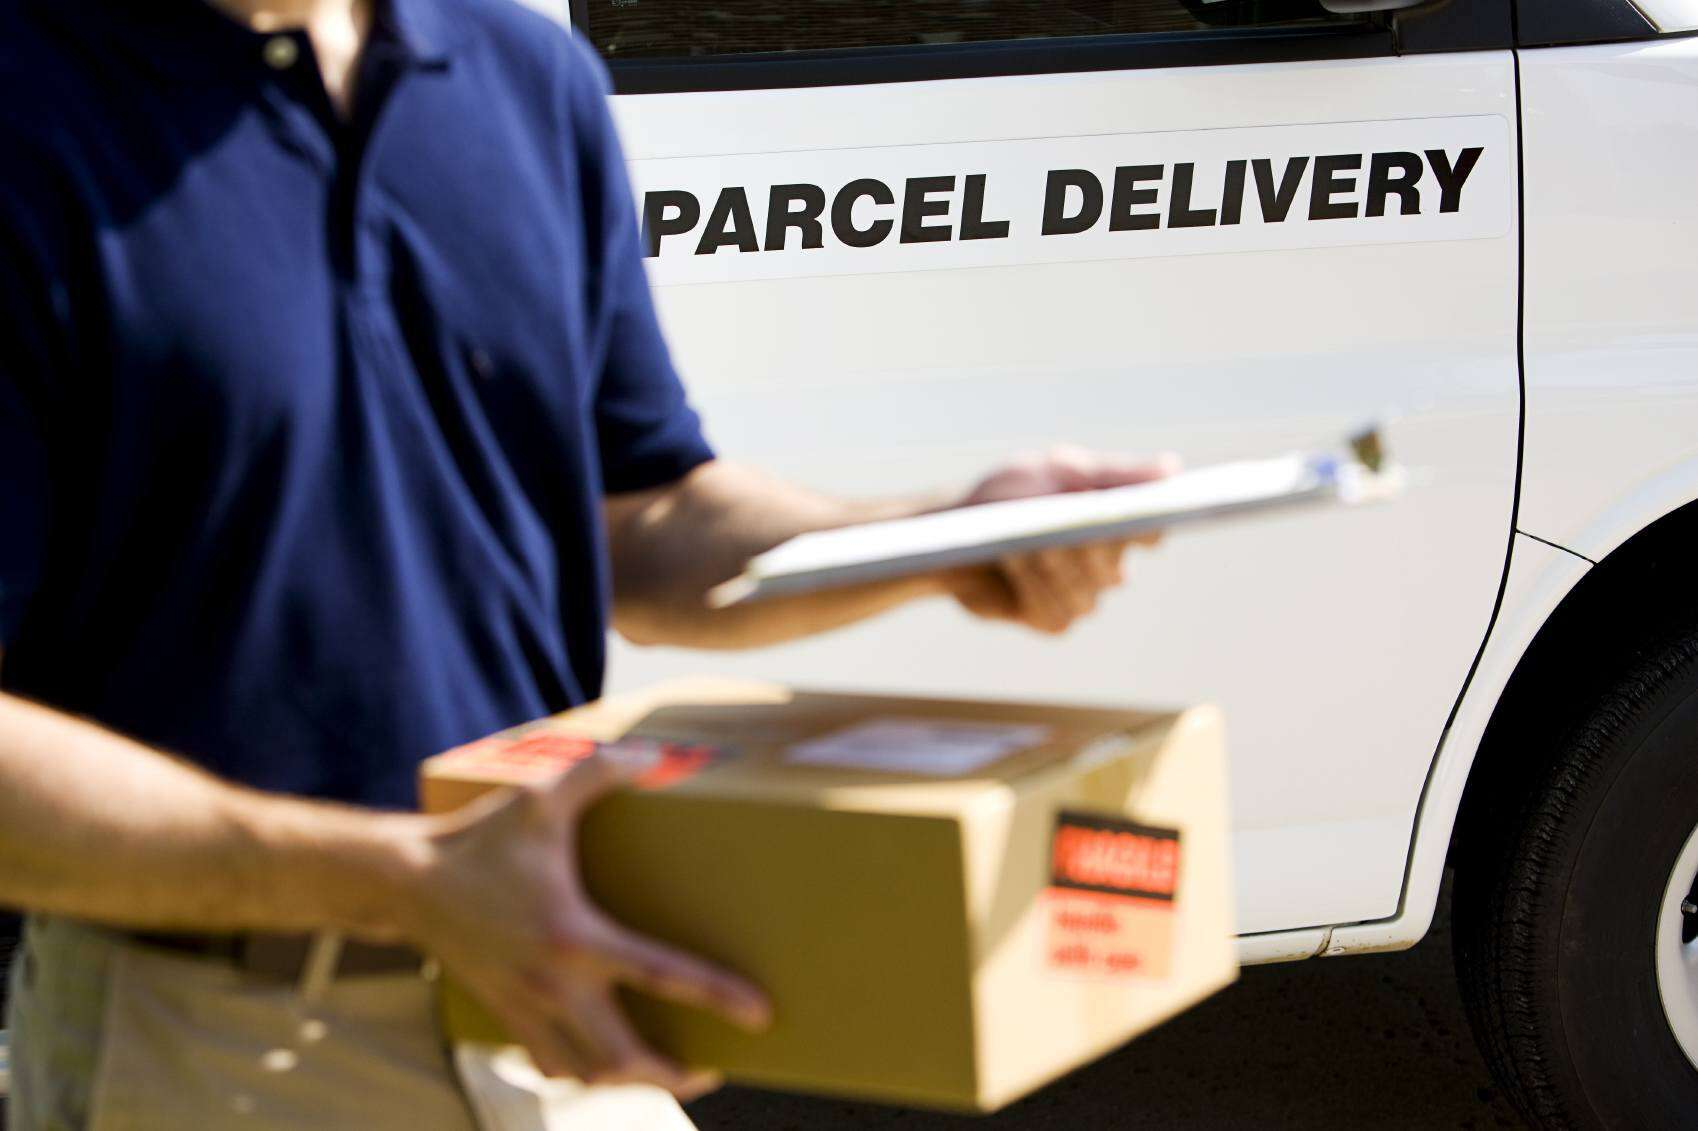 Proxy Shipping Services For US-Based Online Shopping - Vulcan Post